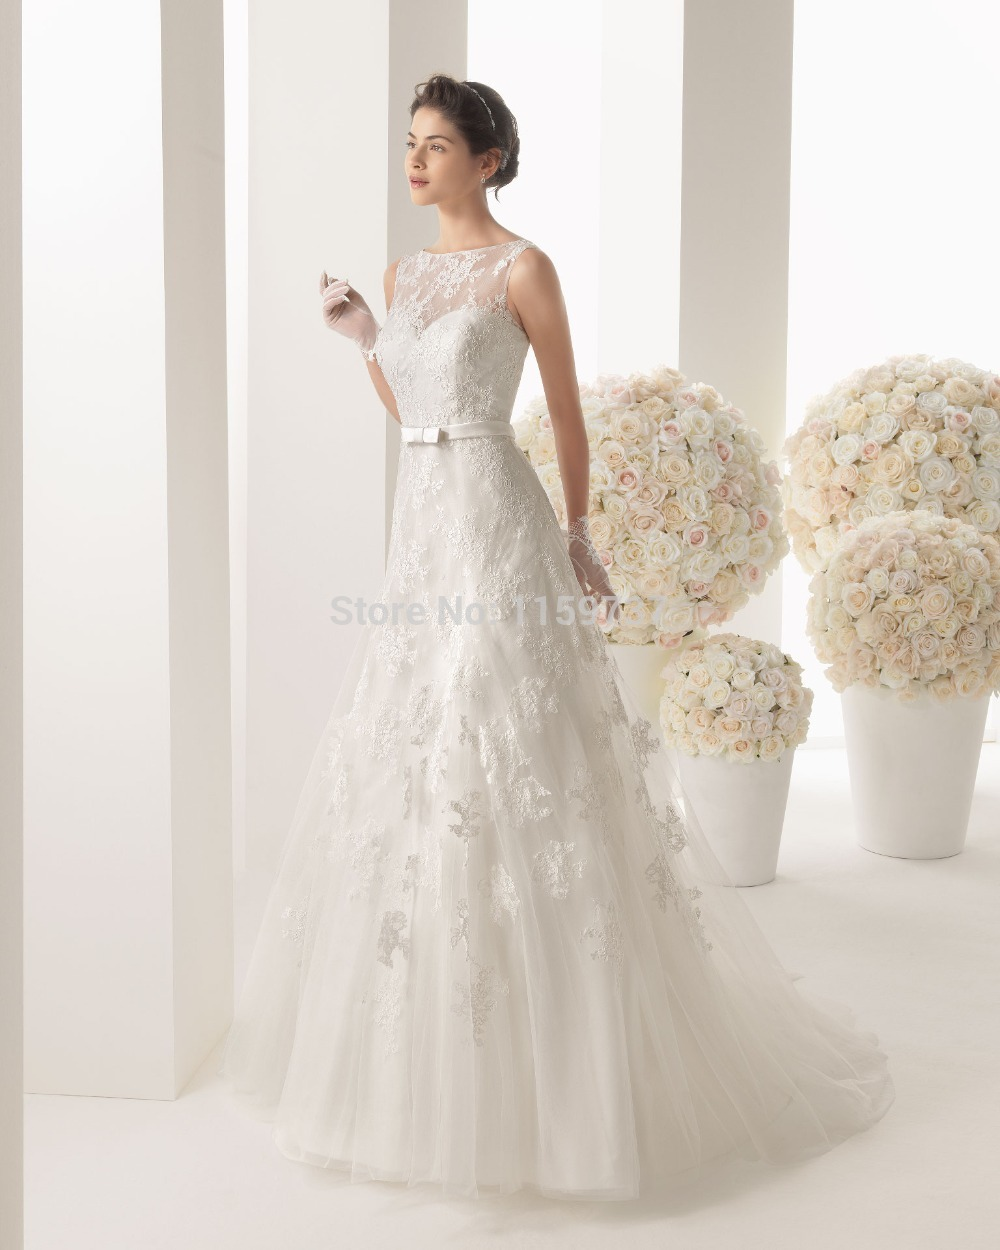 2 flowy wedding dresses flowy wedding dress with lace top